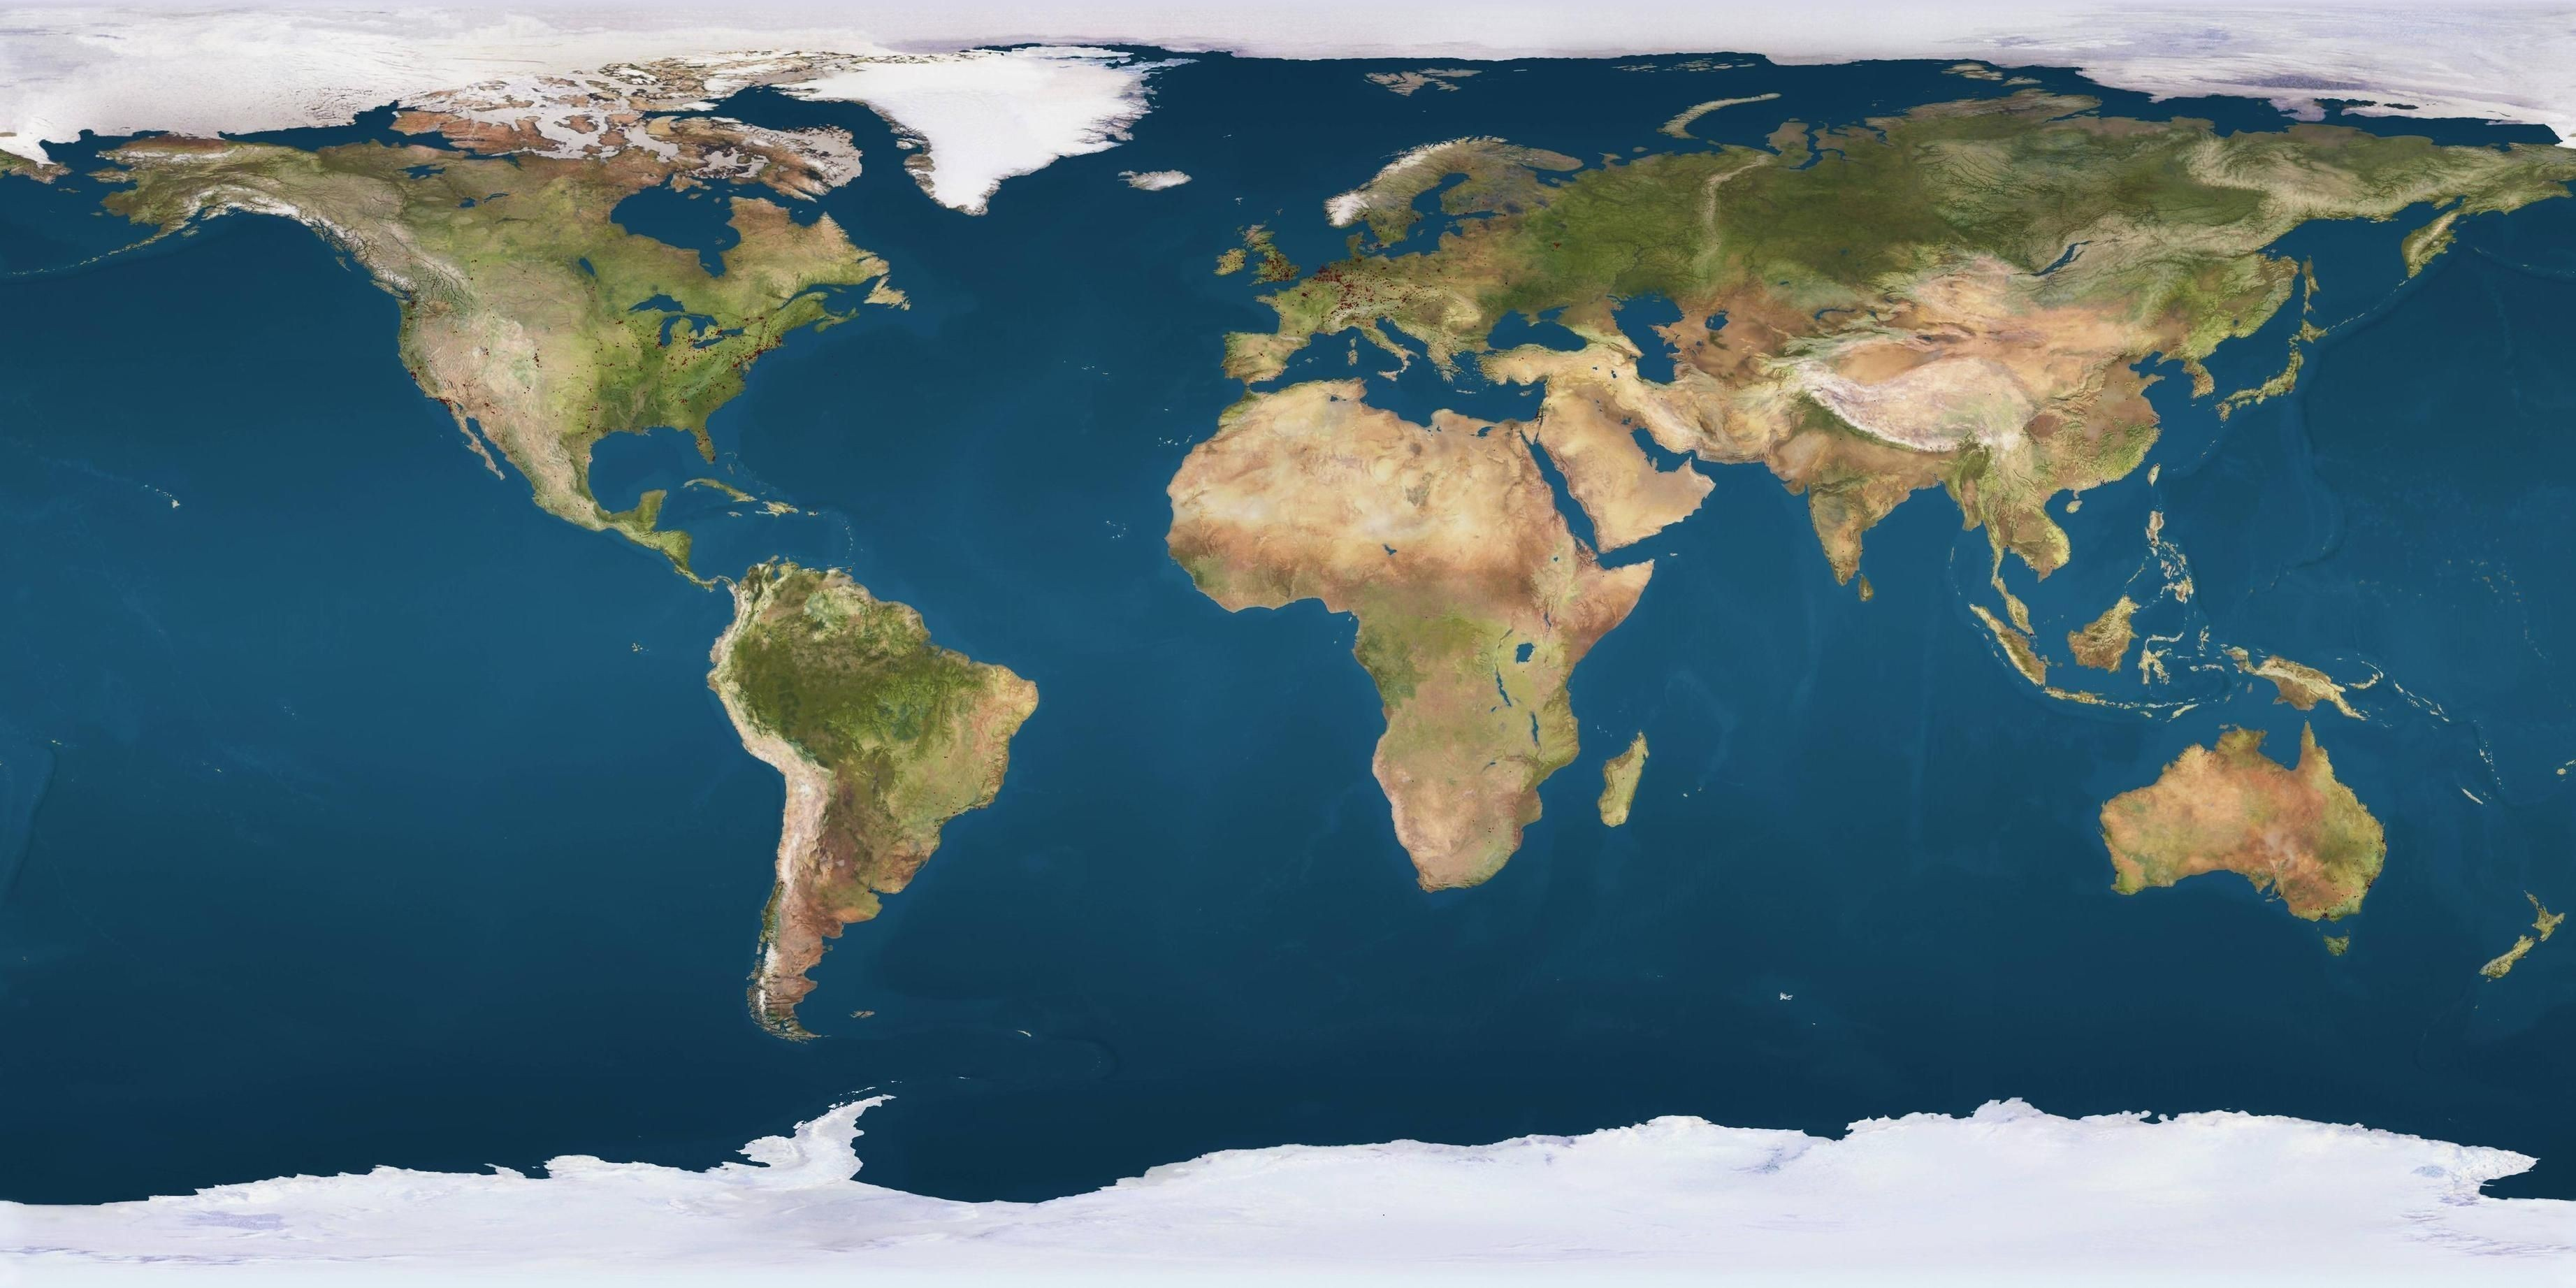 World map wallpapers high resolution 66 background pictures 3686x1843 blank political world map high resolution fresh world map wallpapers high resolution wallpaper cave with gumiabroncs Image collections